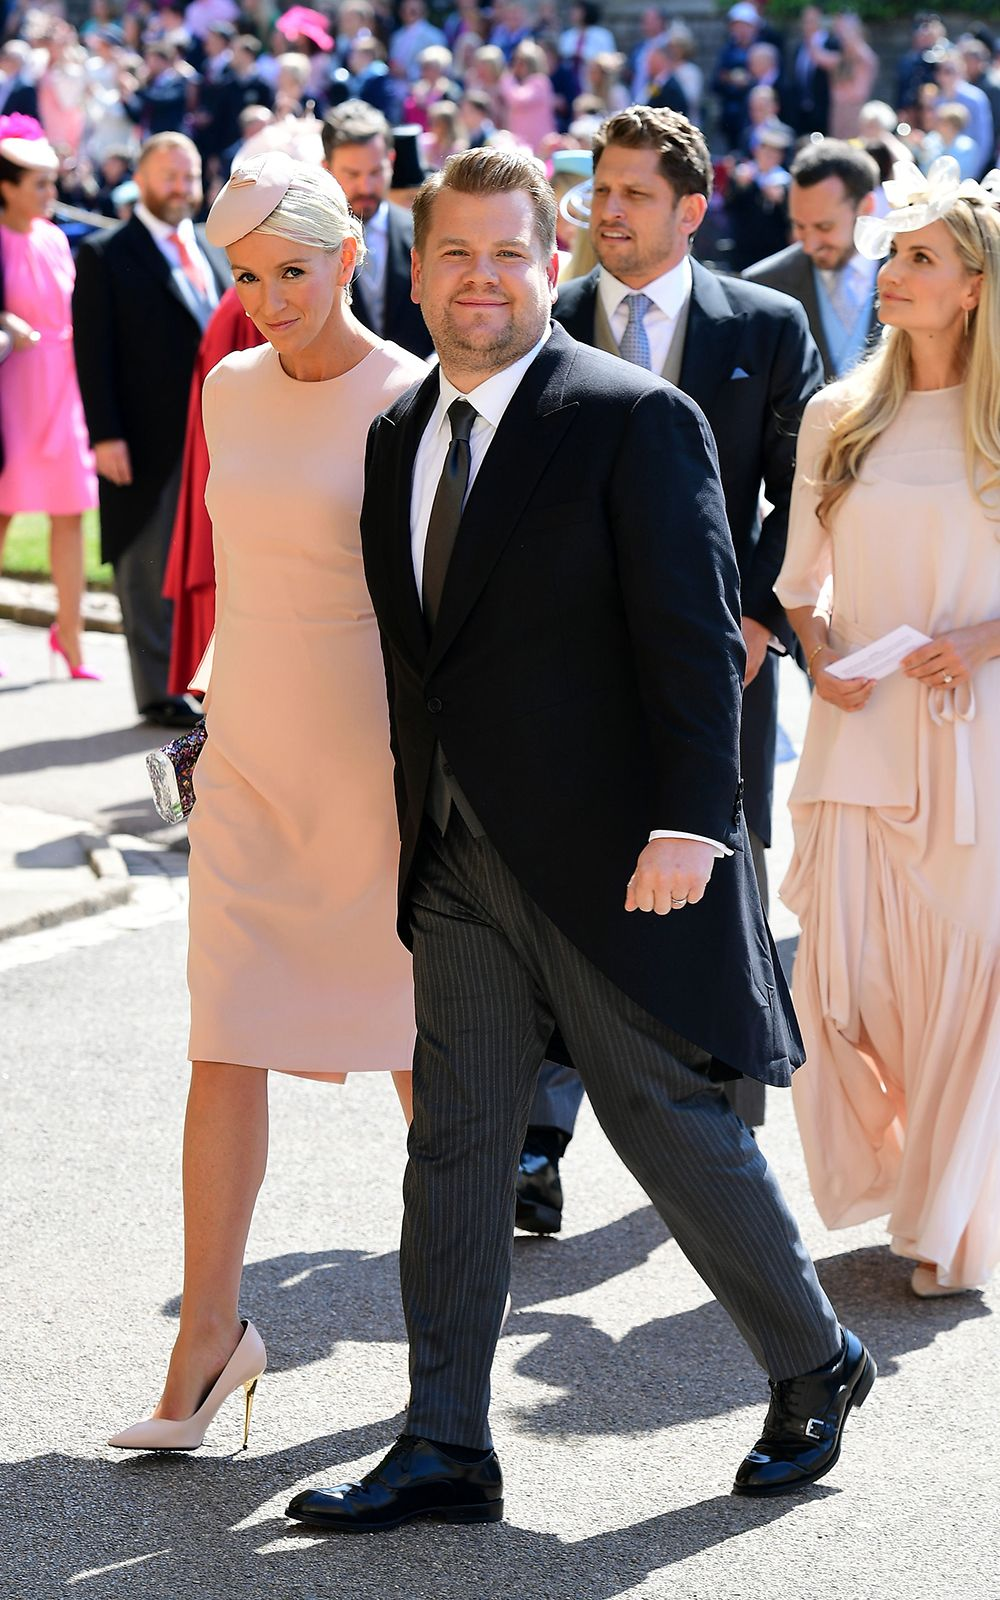 Reception dresses for royal wedding  Photos From the Royal Wedding of Prince Harry and Meghan Markle